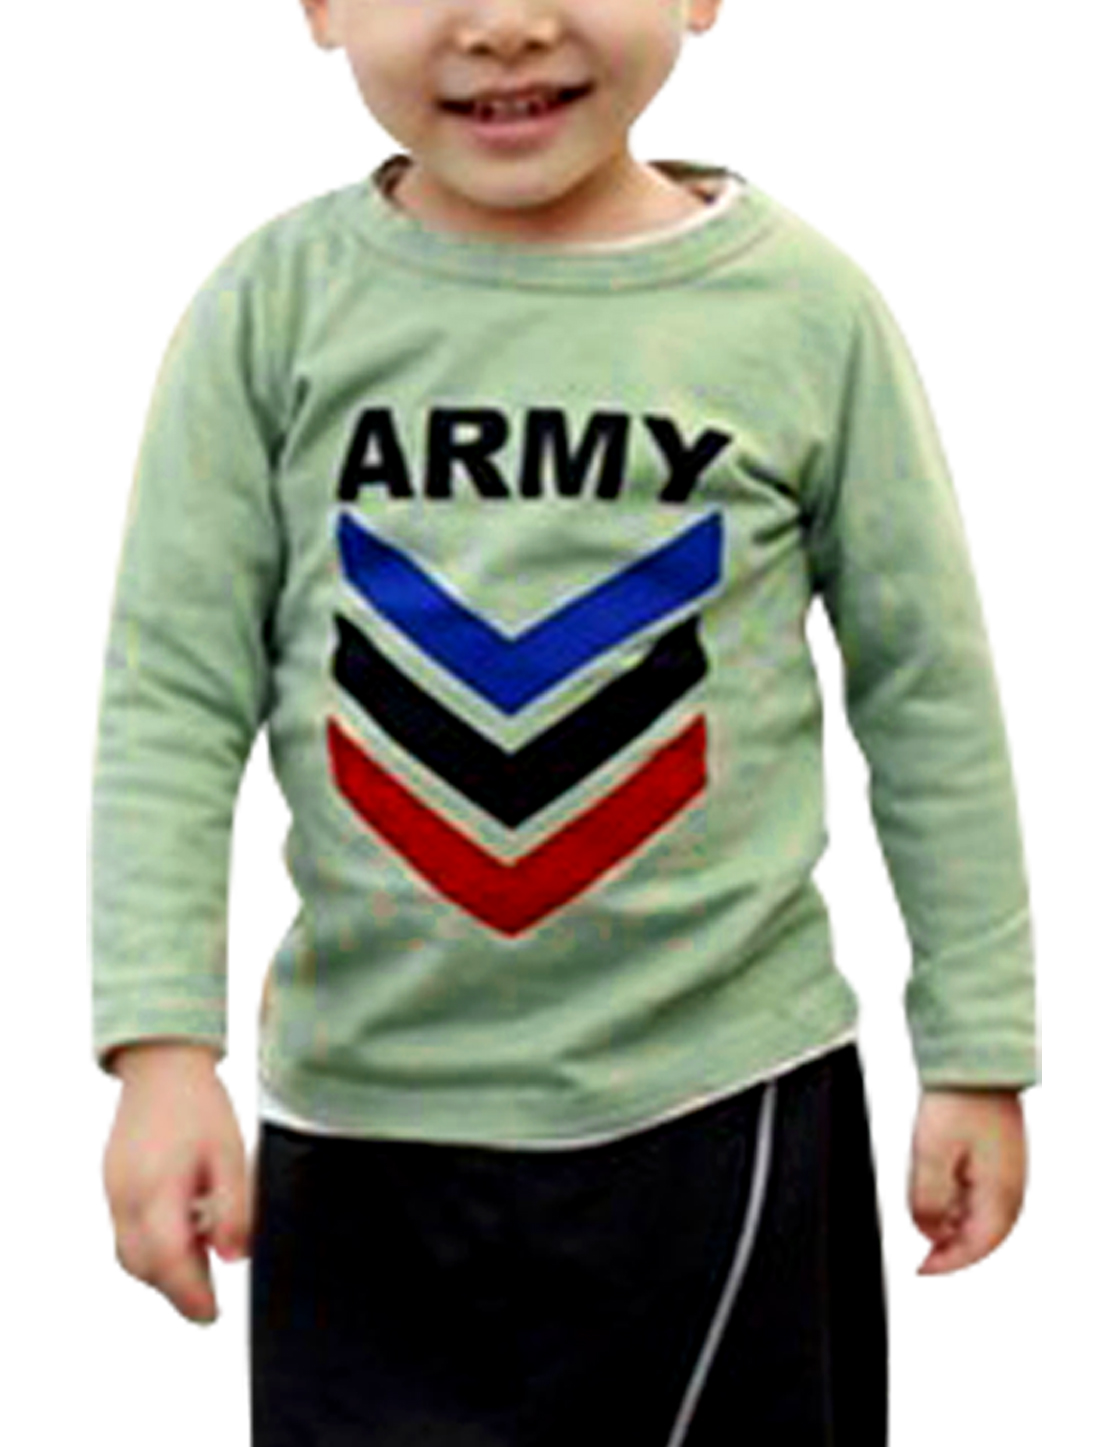 Boys Round Neck Green Letter Patterns Long Sleeve Leisure T-Shirt 7